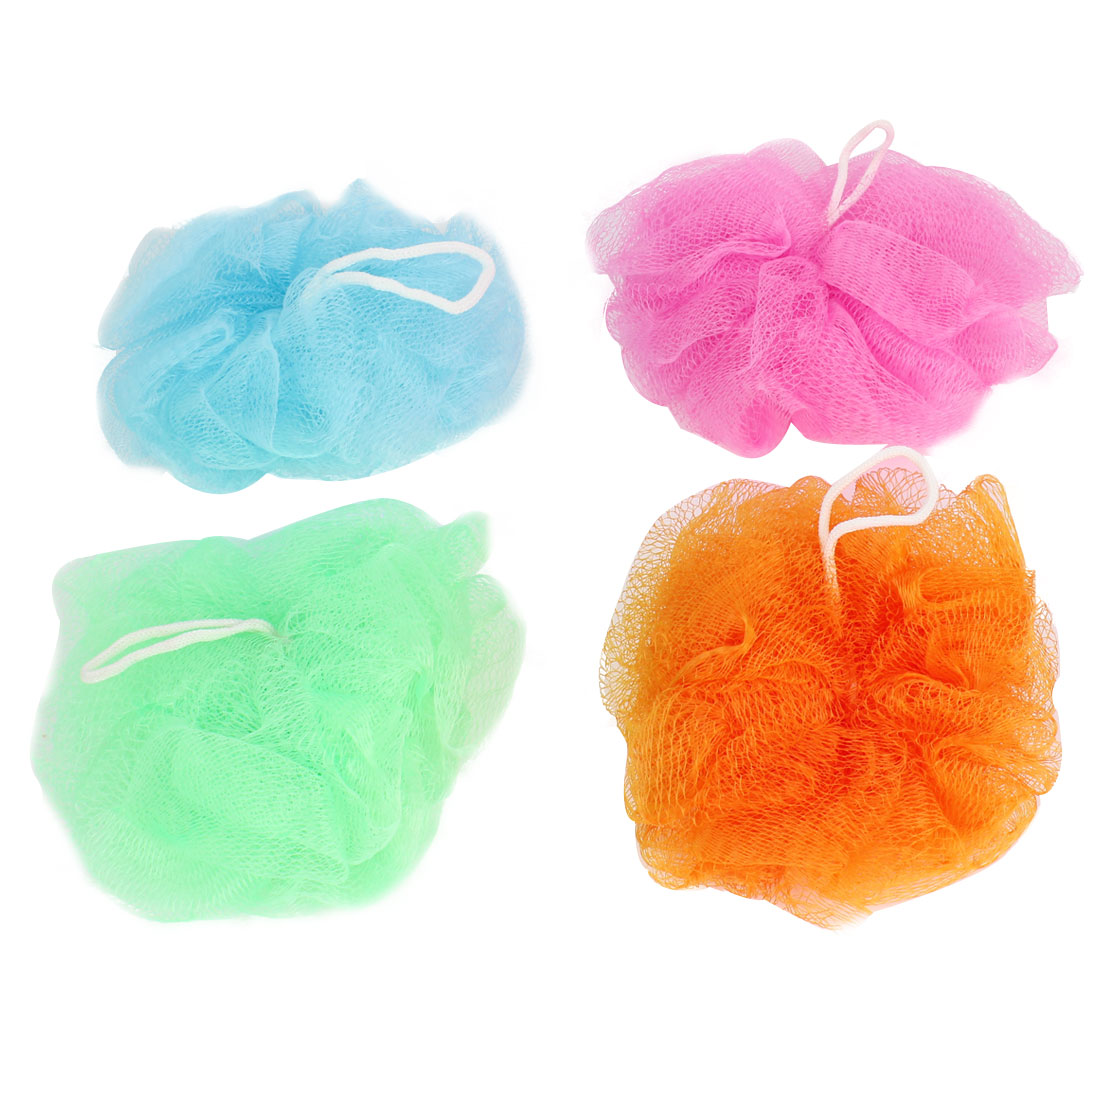 4 Pcs Colorful Nylon Mesh Bath Shower Flower Ball w Hanging Loop